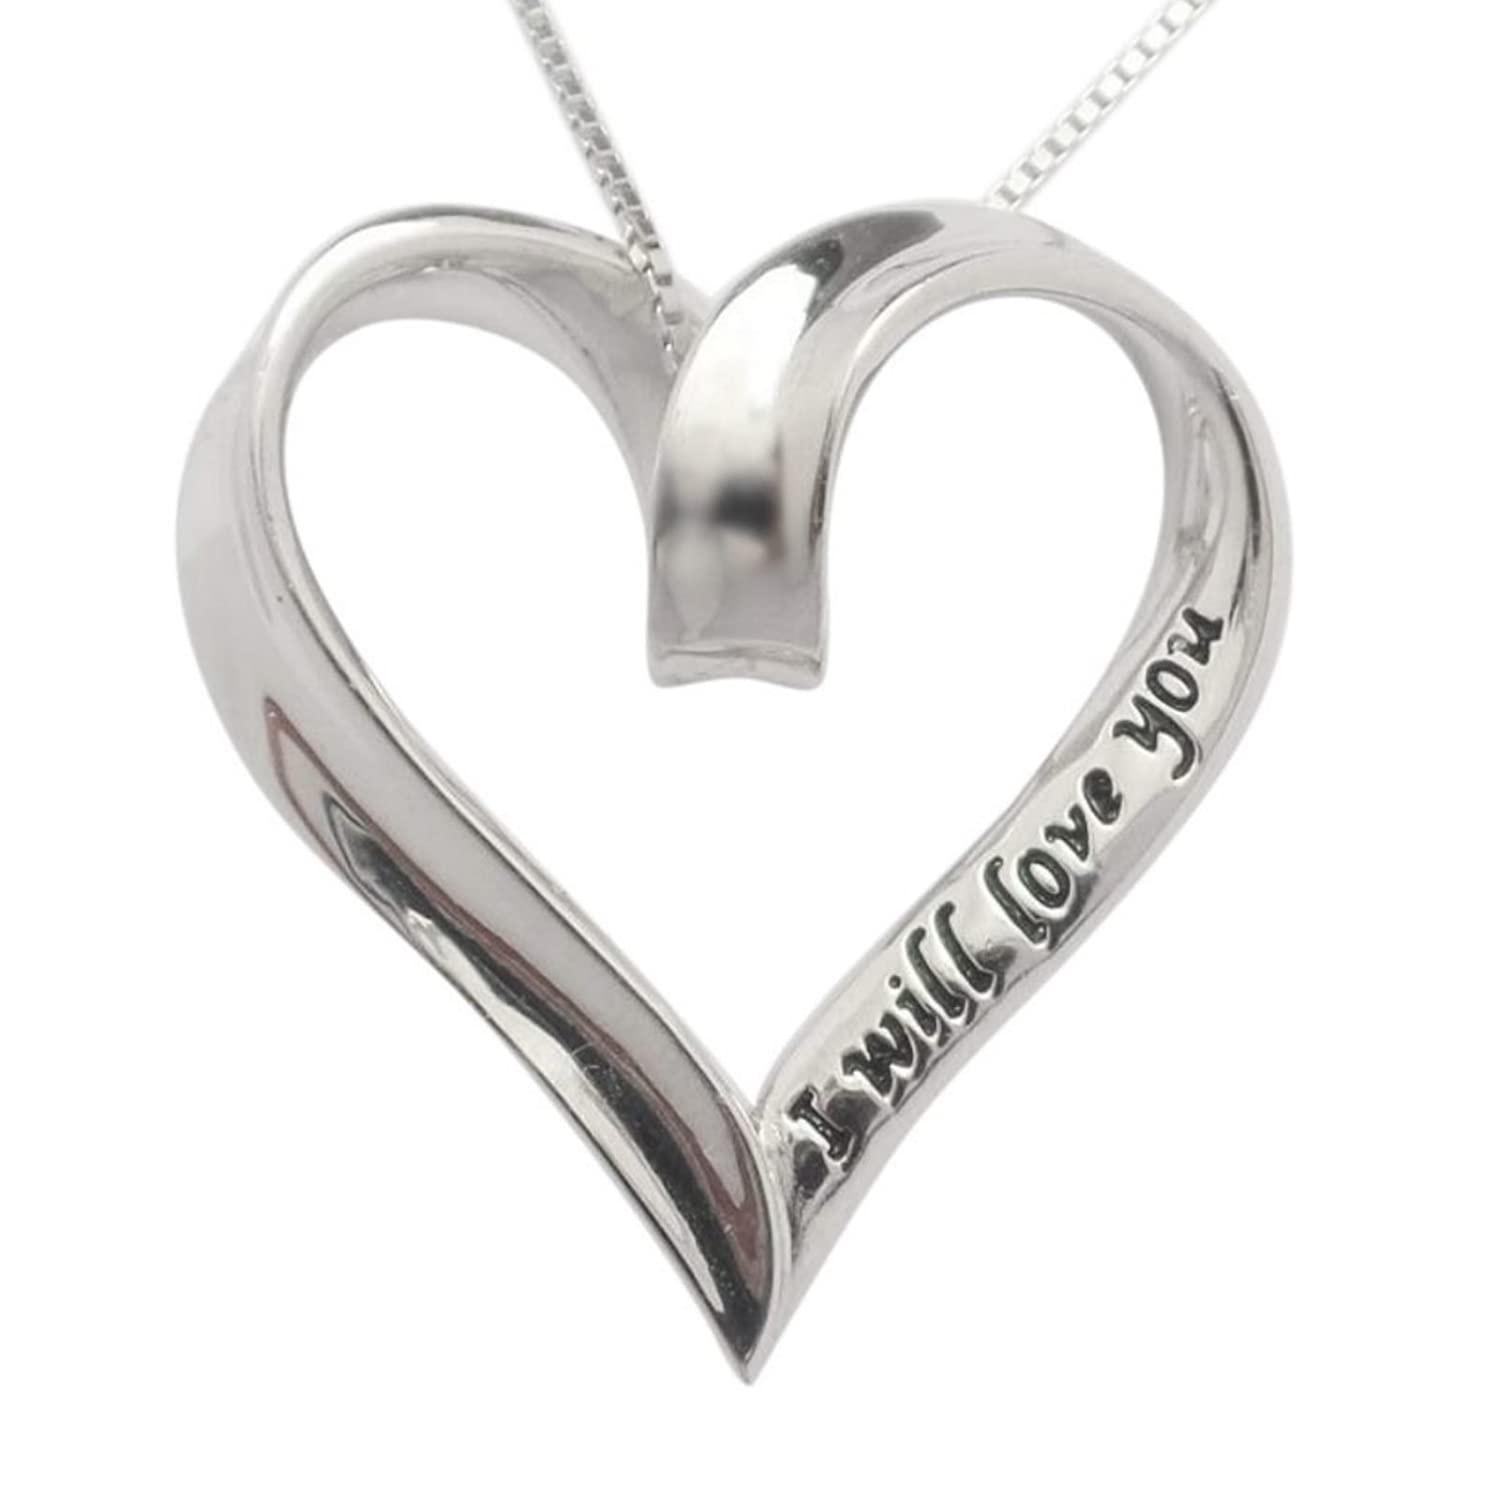 """925 Sterling Silver I Will Love You Always & Forever Heart Necklace 18"""" Chain Gift By Trulycharming"""